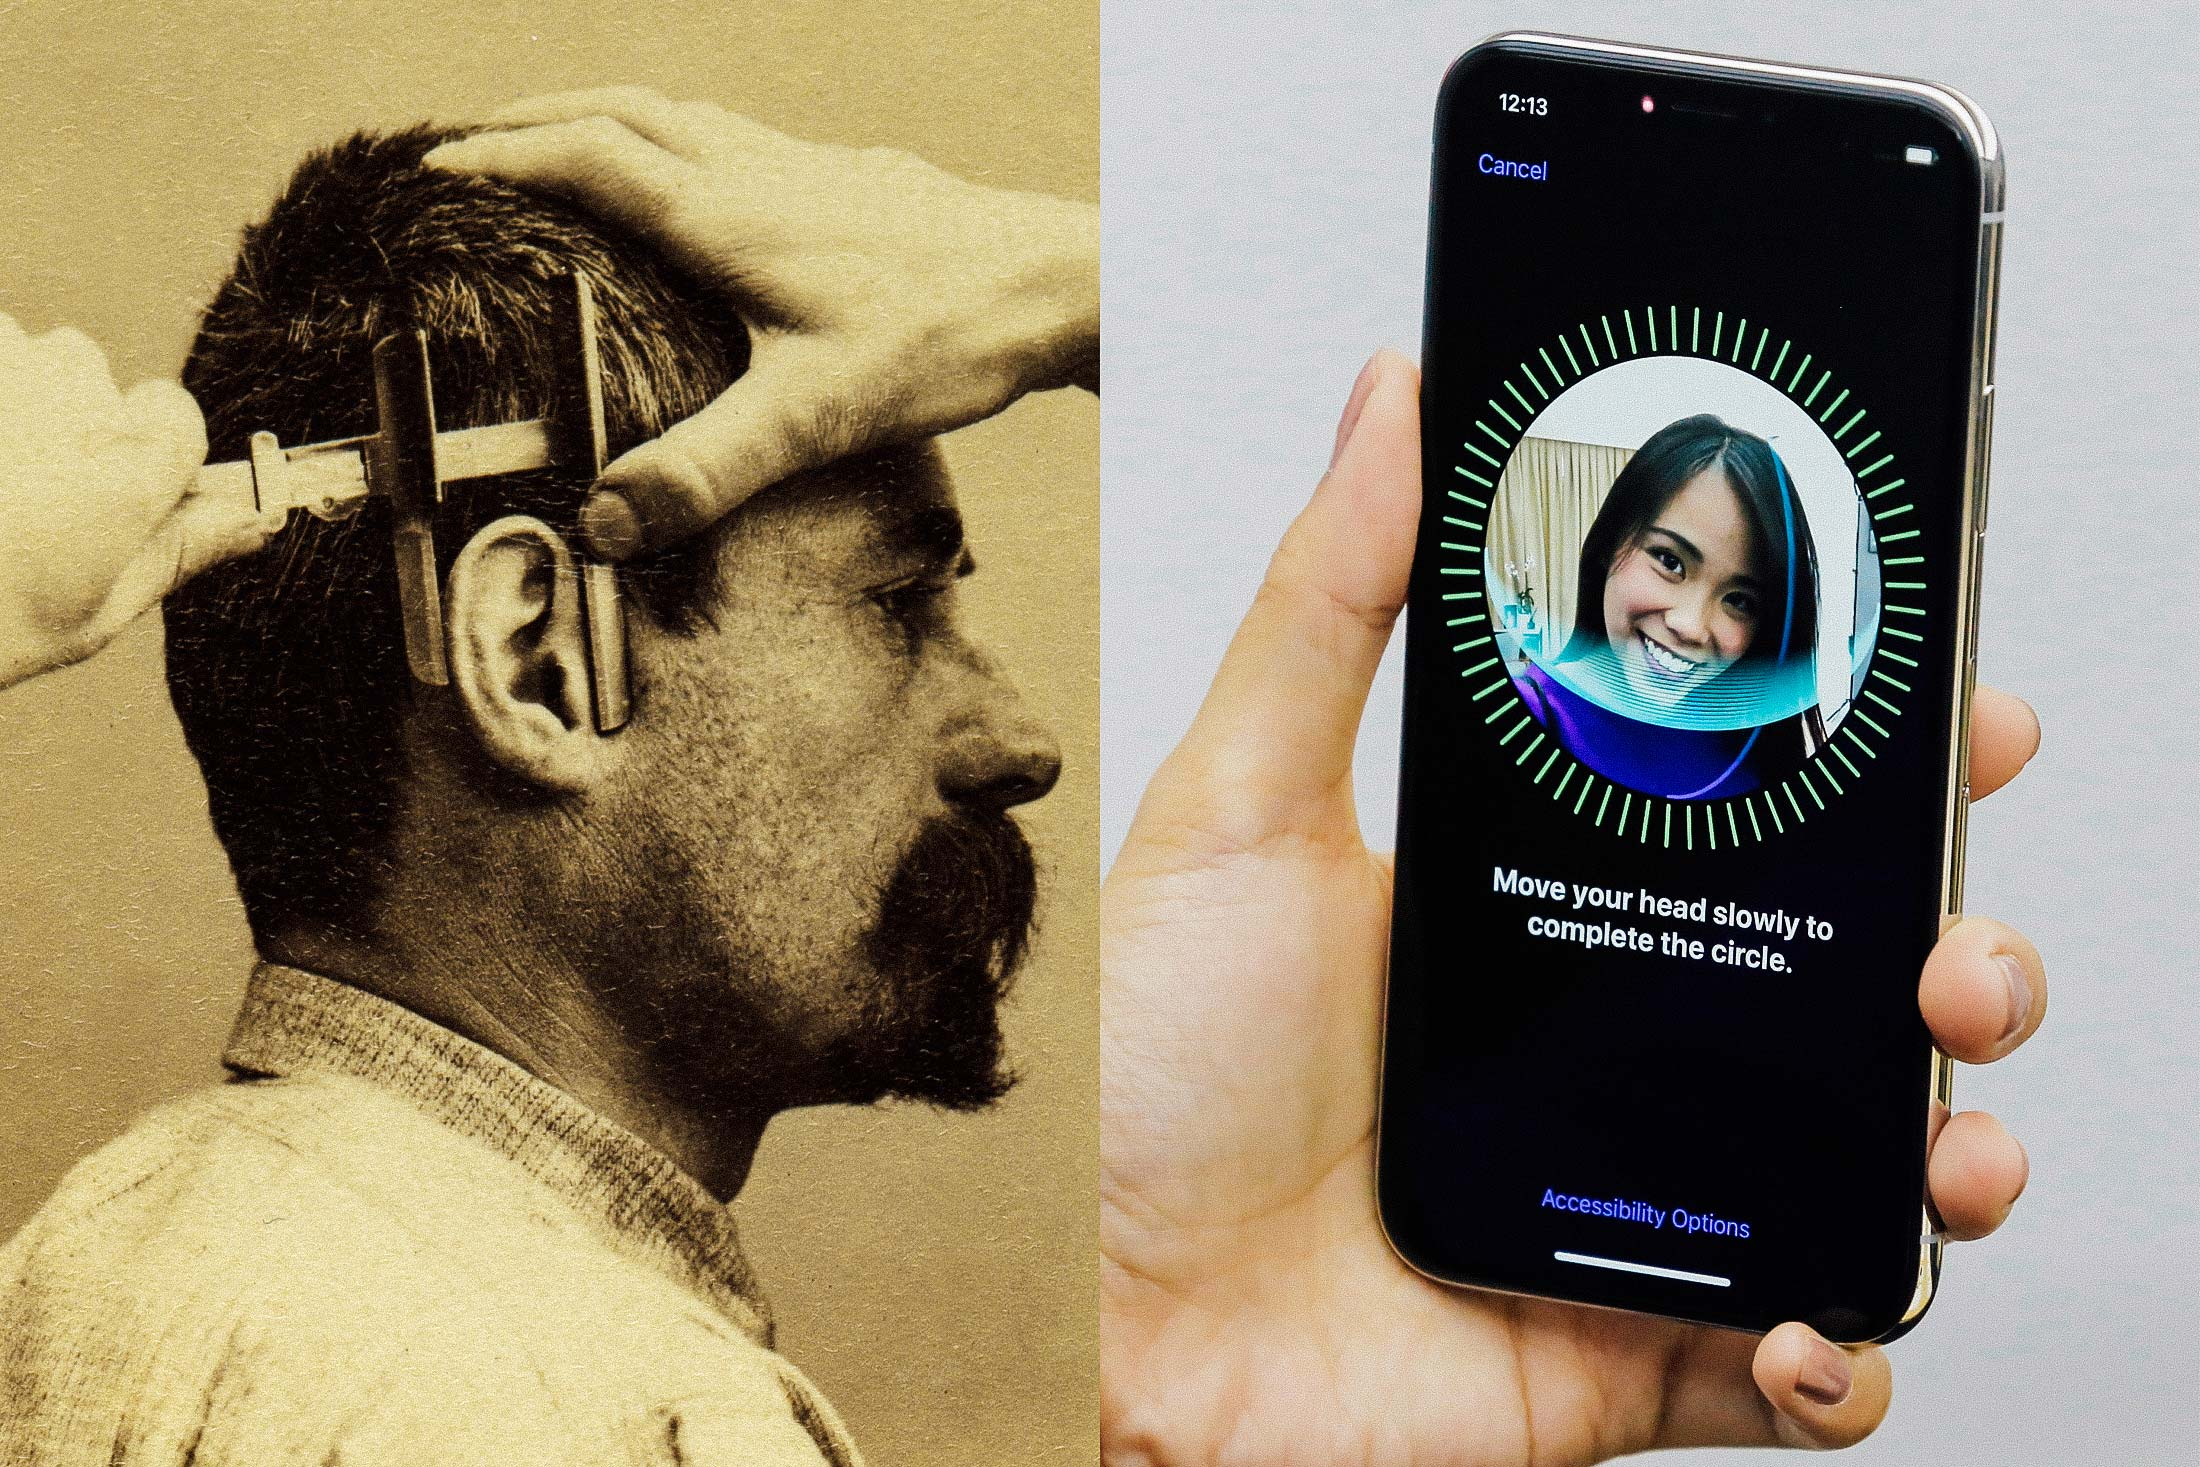 At left: Bertillon measurements. At right: Face ID on iPhone X.